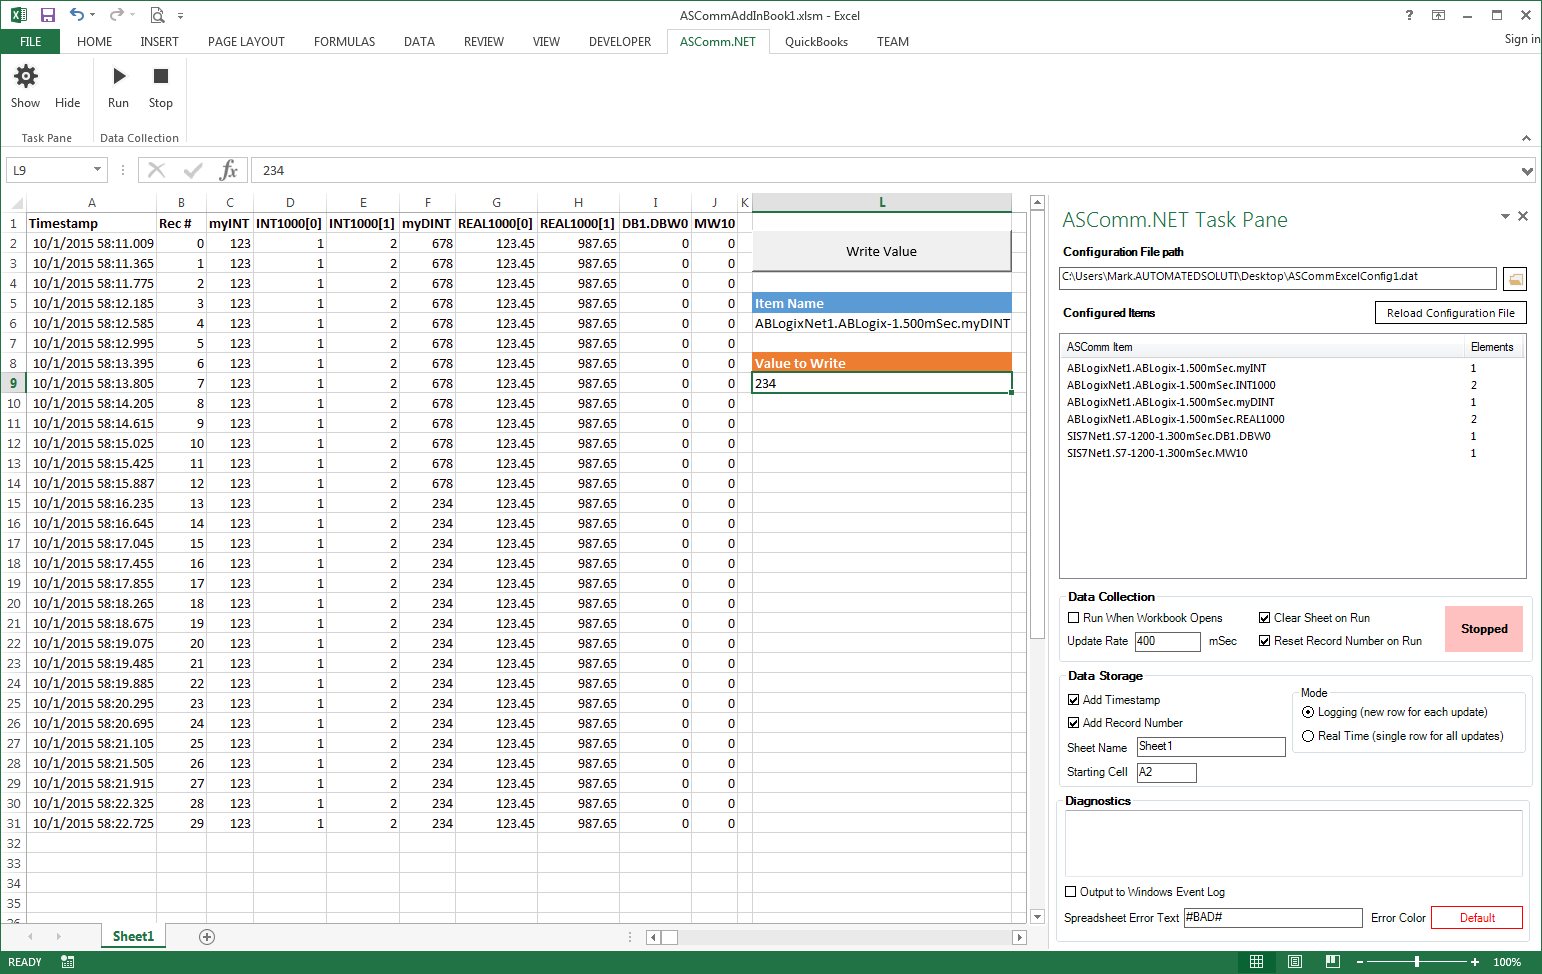 Excel Add-in for Siemens S7 Data Logging